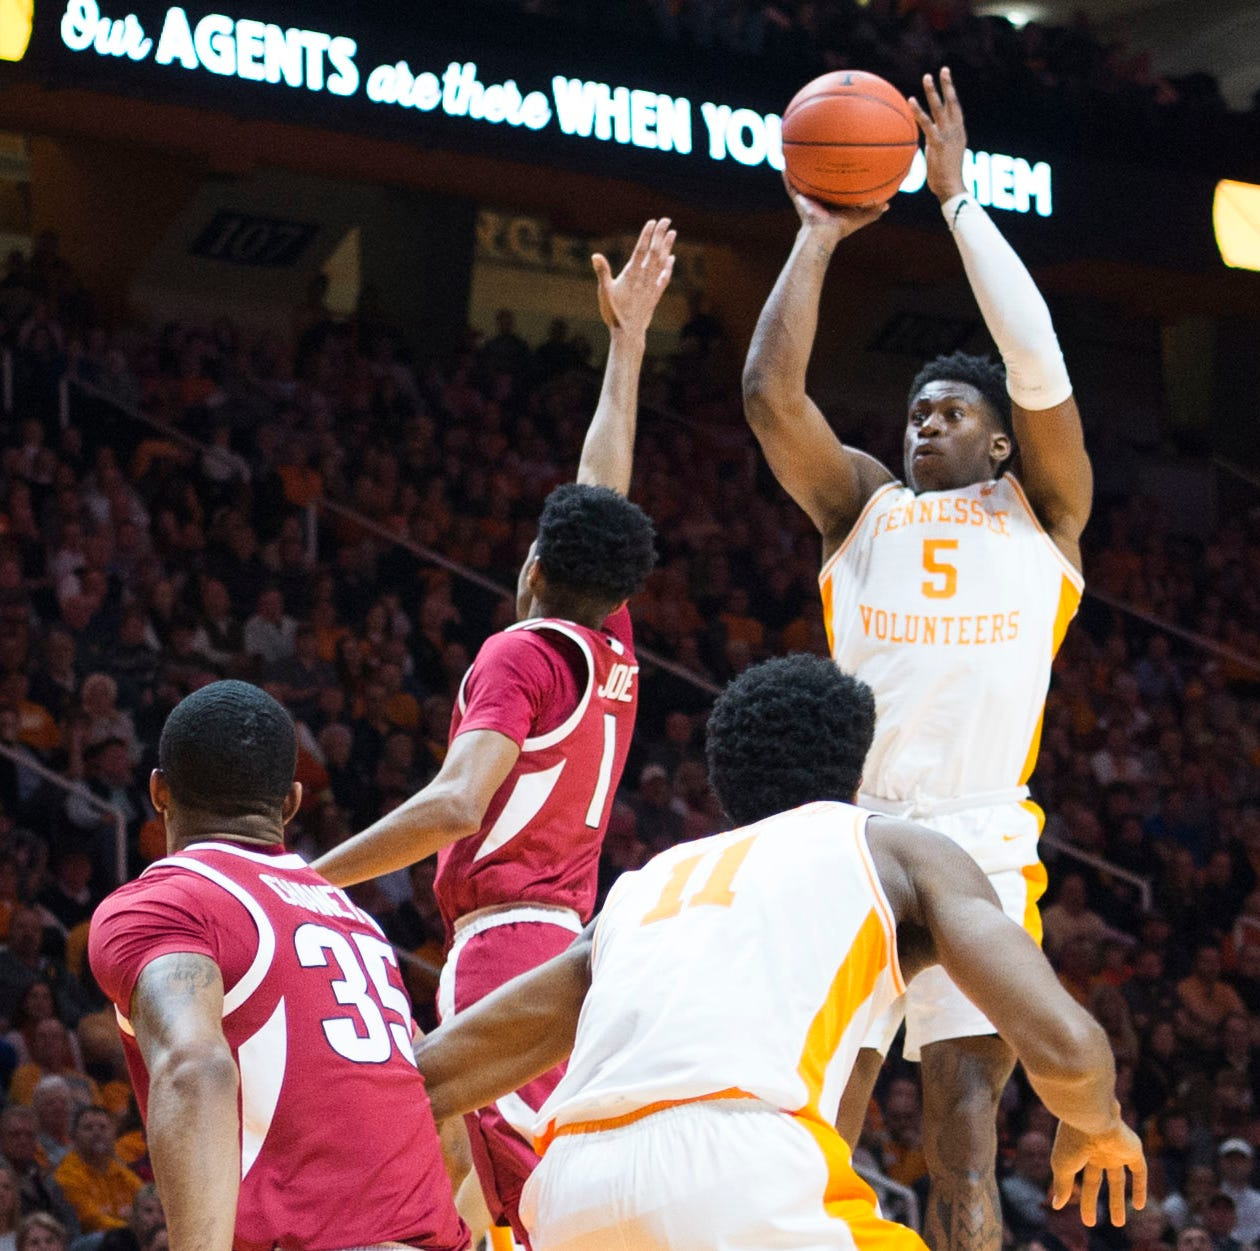 UT Vols basketball survives upset-minded Alabama, John Petty's shooting